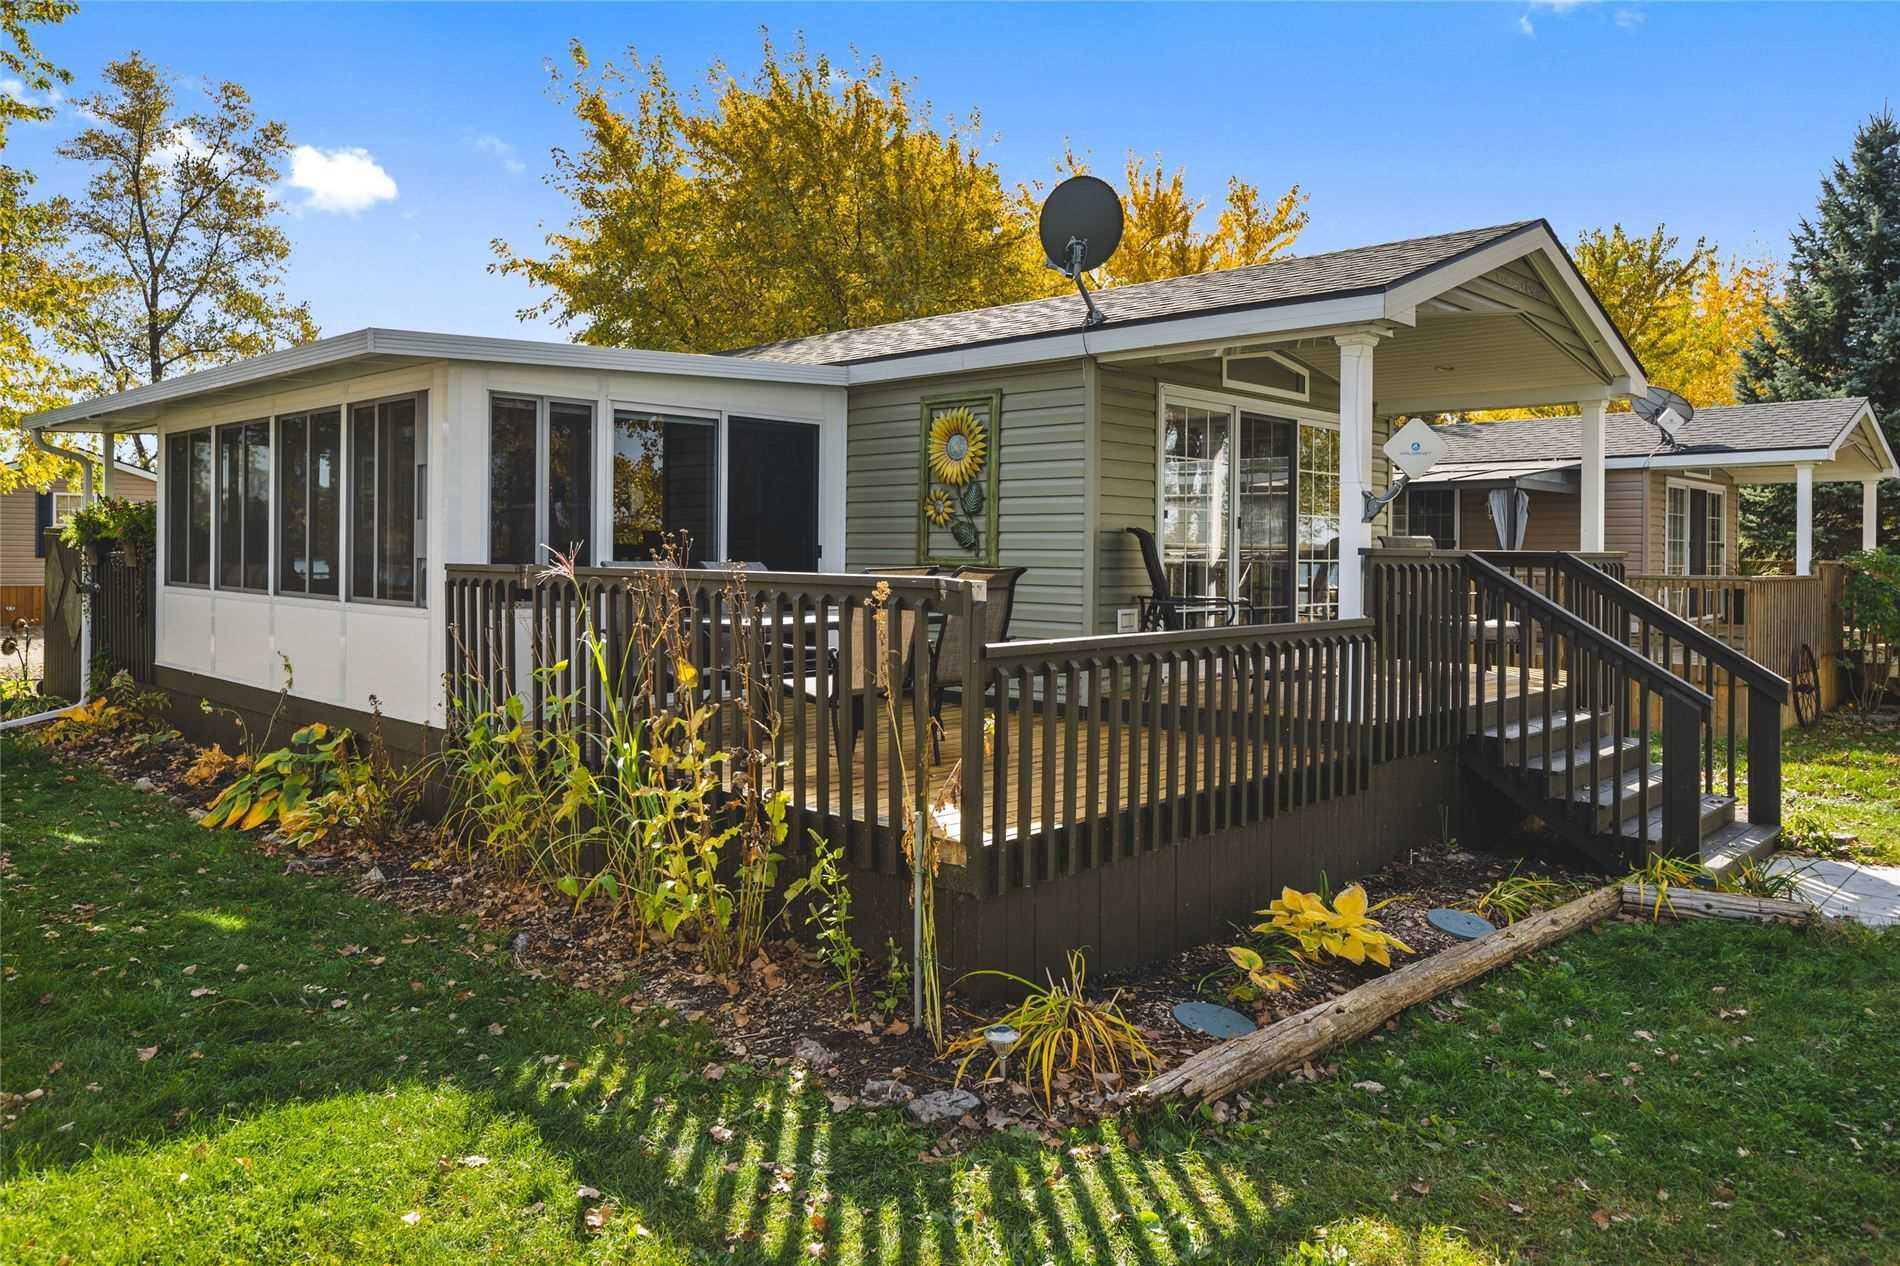 Main Photo: 486 County Rd 18 Road in Prince Edward County: Picton House (Bungalow) for sale : MLS®# X4658355